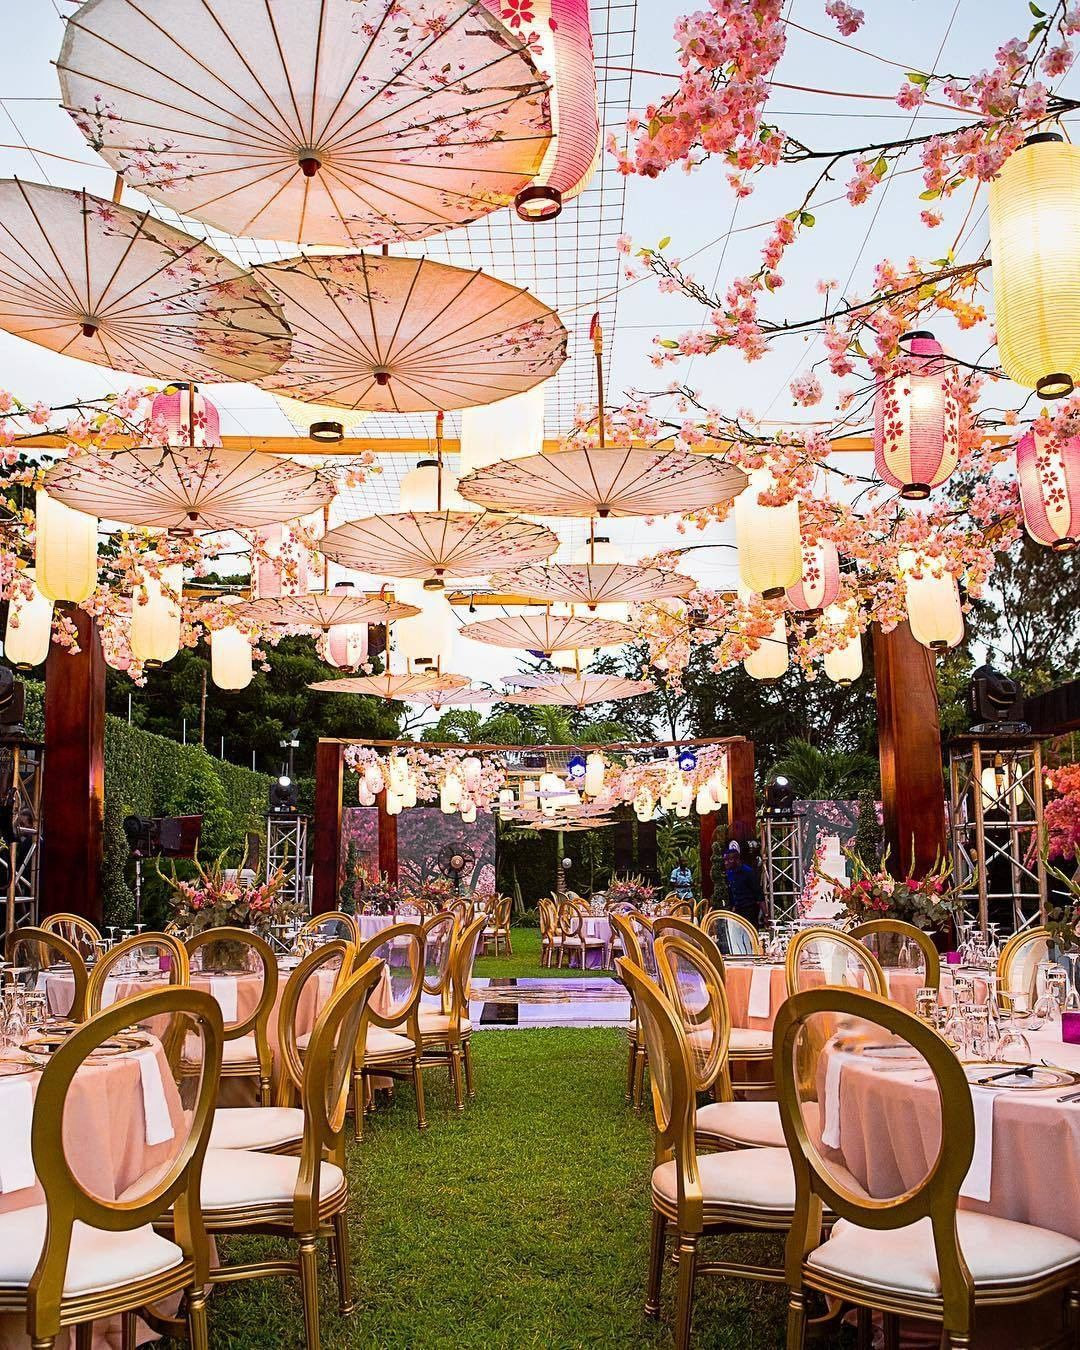 Pin Parasol Distance Maison this parasol & cherry blossom-filled ceiling is the stuff of